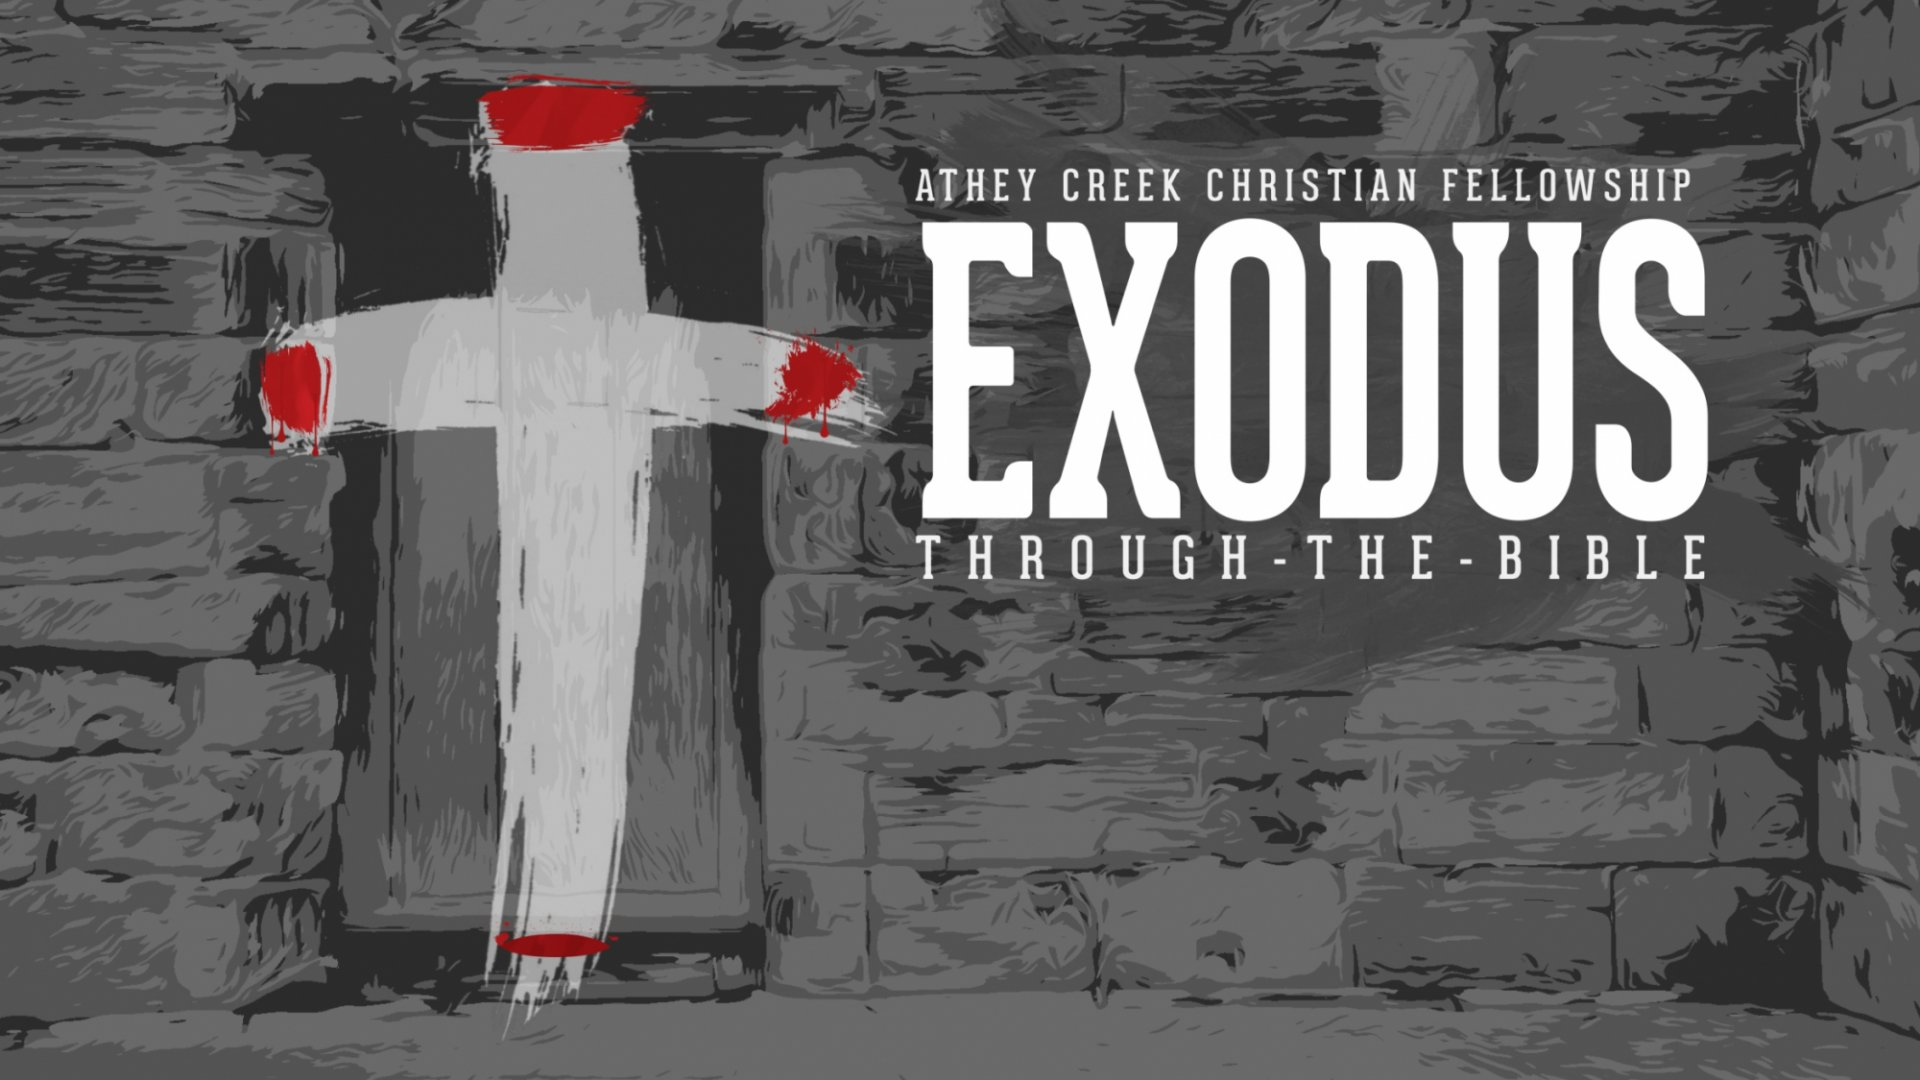 Teaching artwork for Exodus